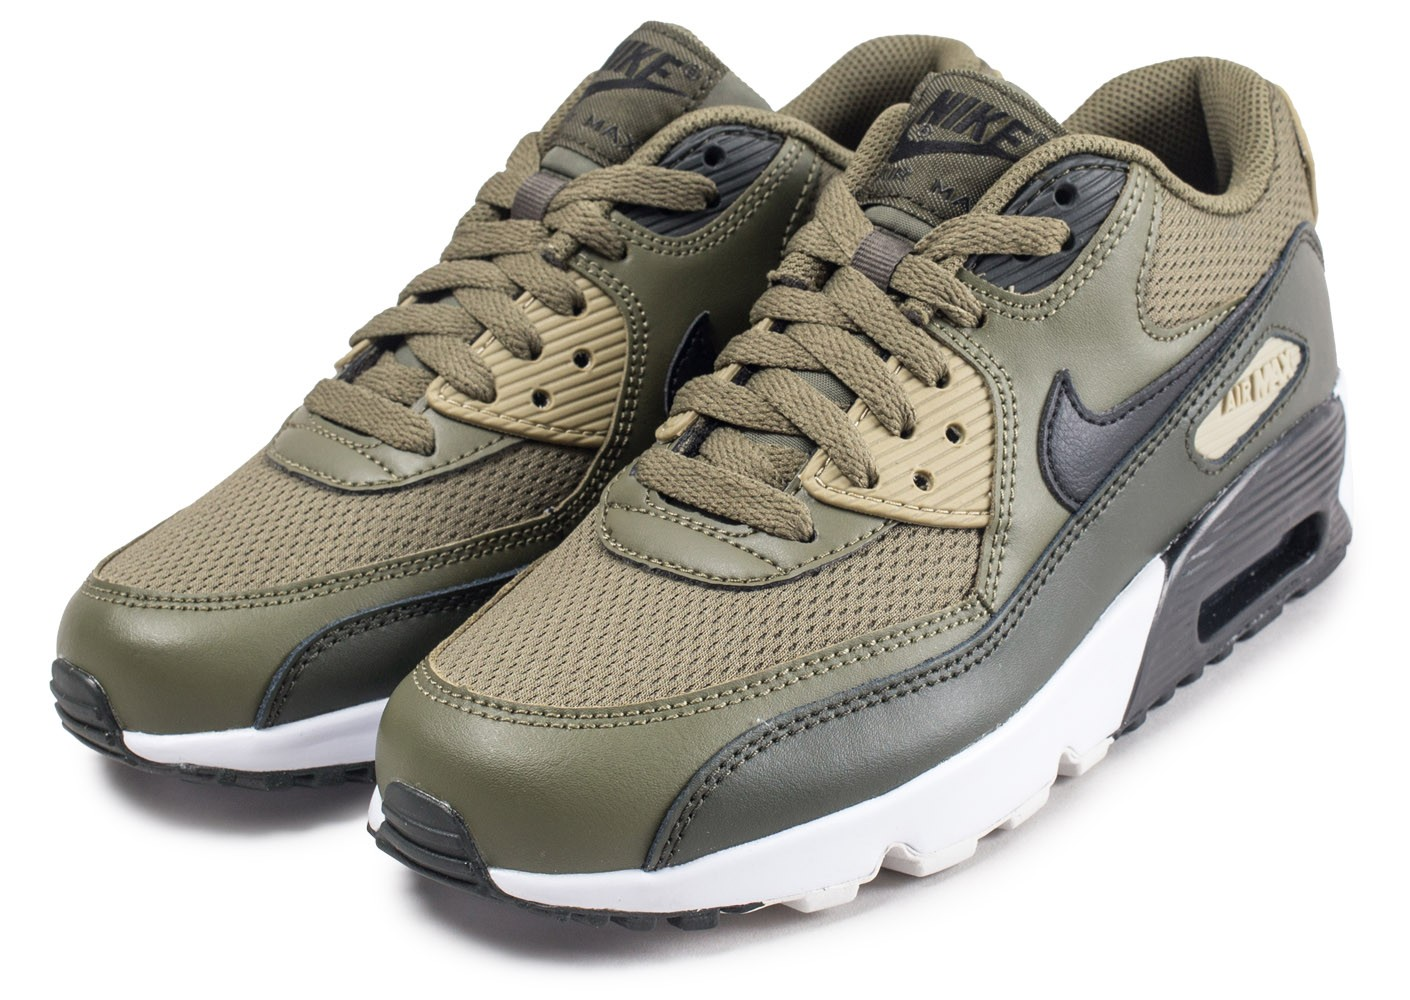 huge selection of a7fbb 9a709 ... Chaussures Nike Air Max 90 kaki junior vue intérieure ...